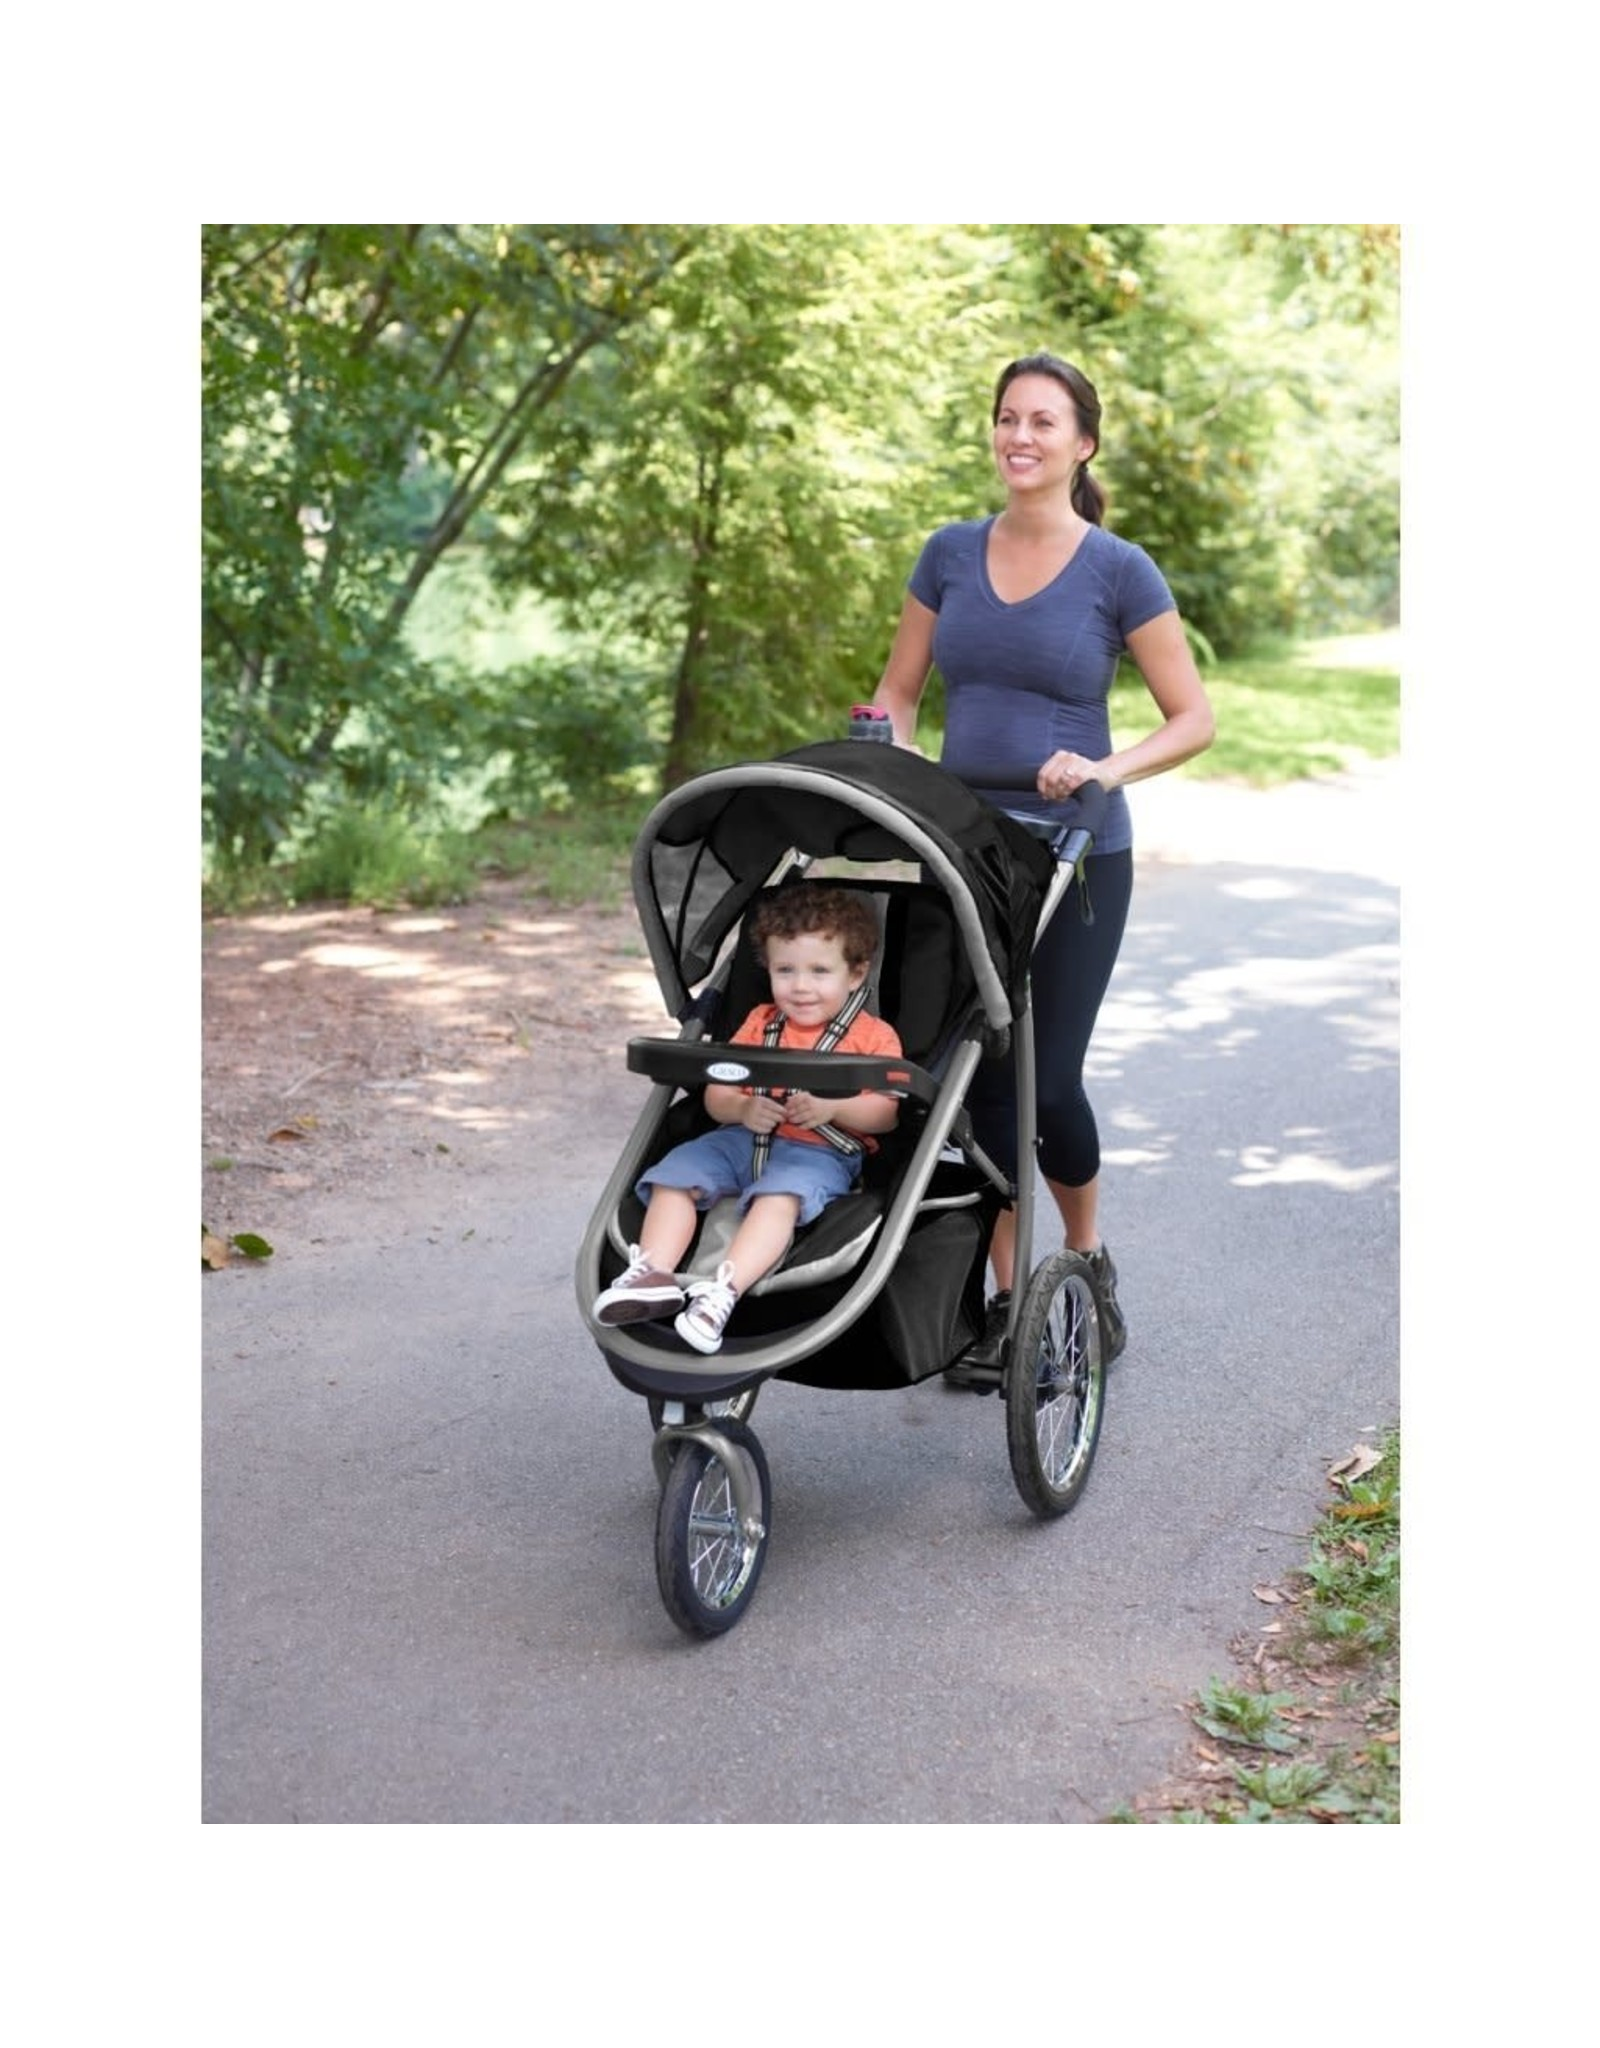 Graco Graco FastAction Fold Jogger Travel System  Includes the FastAction Fold Jogging Stroller and SnugRide 35 Infant Car Seat, Gotham